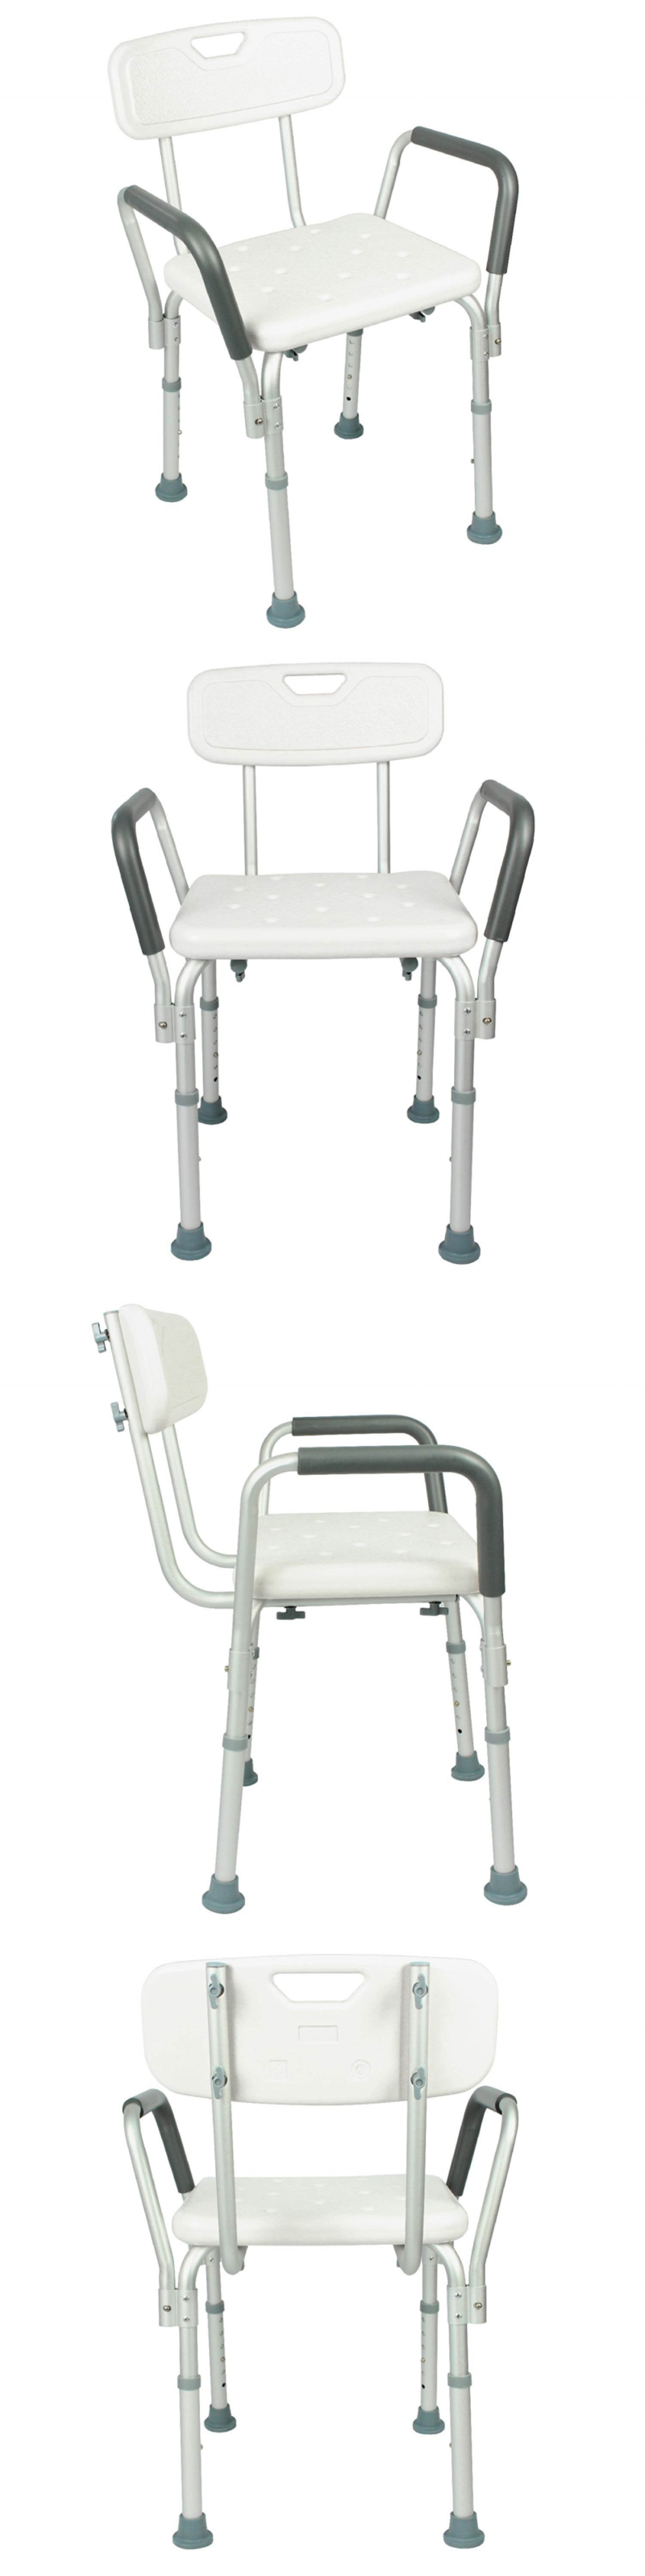 Shower and Bath Seats Shower Chair With Back By Vive Bathtub